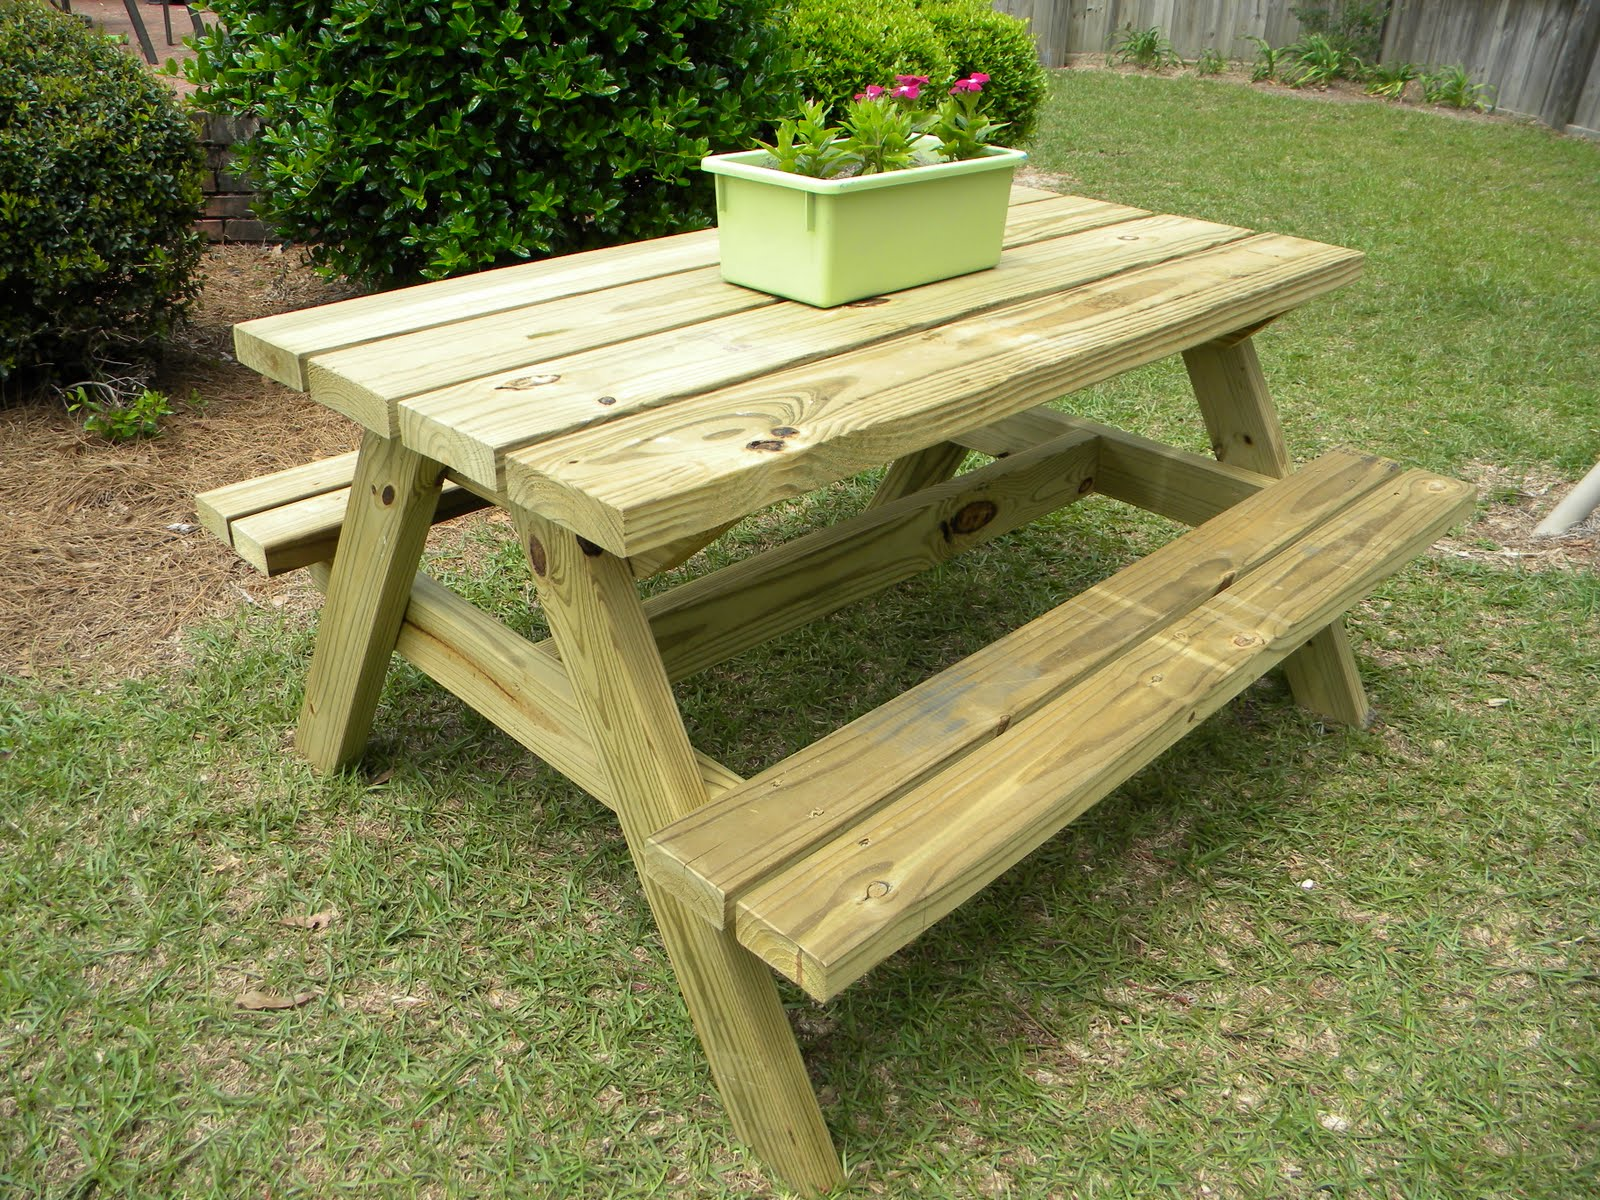 Guide to get picnic table with built in cooler plans the for Bancos de jardin rusticos